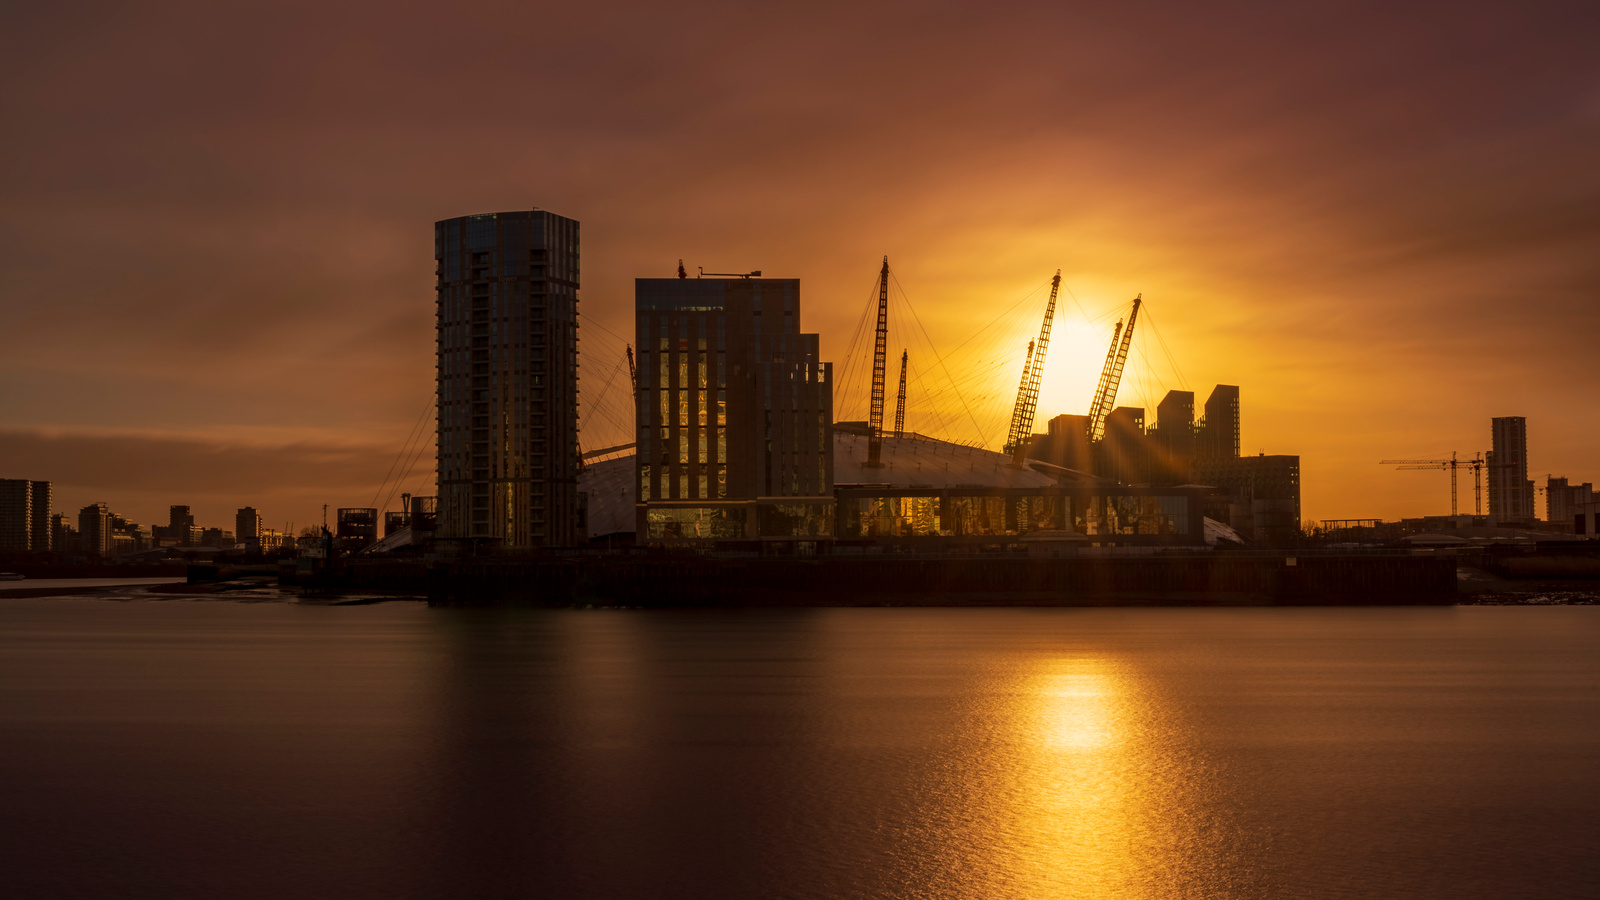 Sunrise at the O2